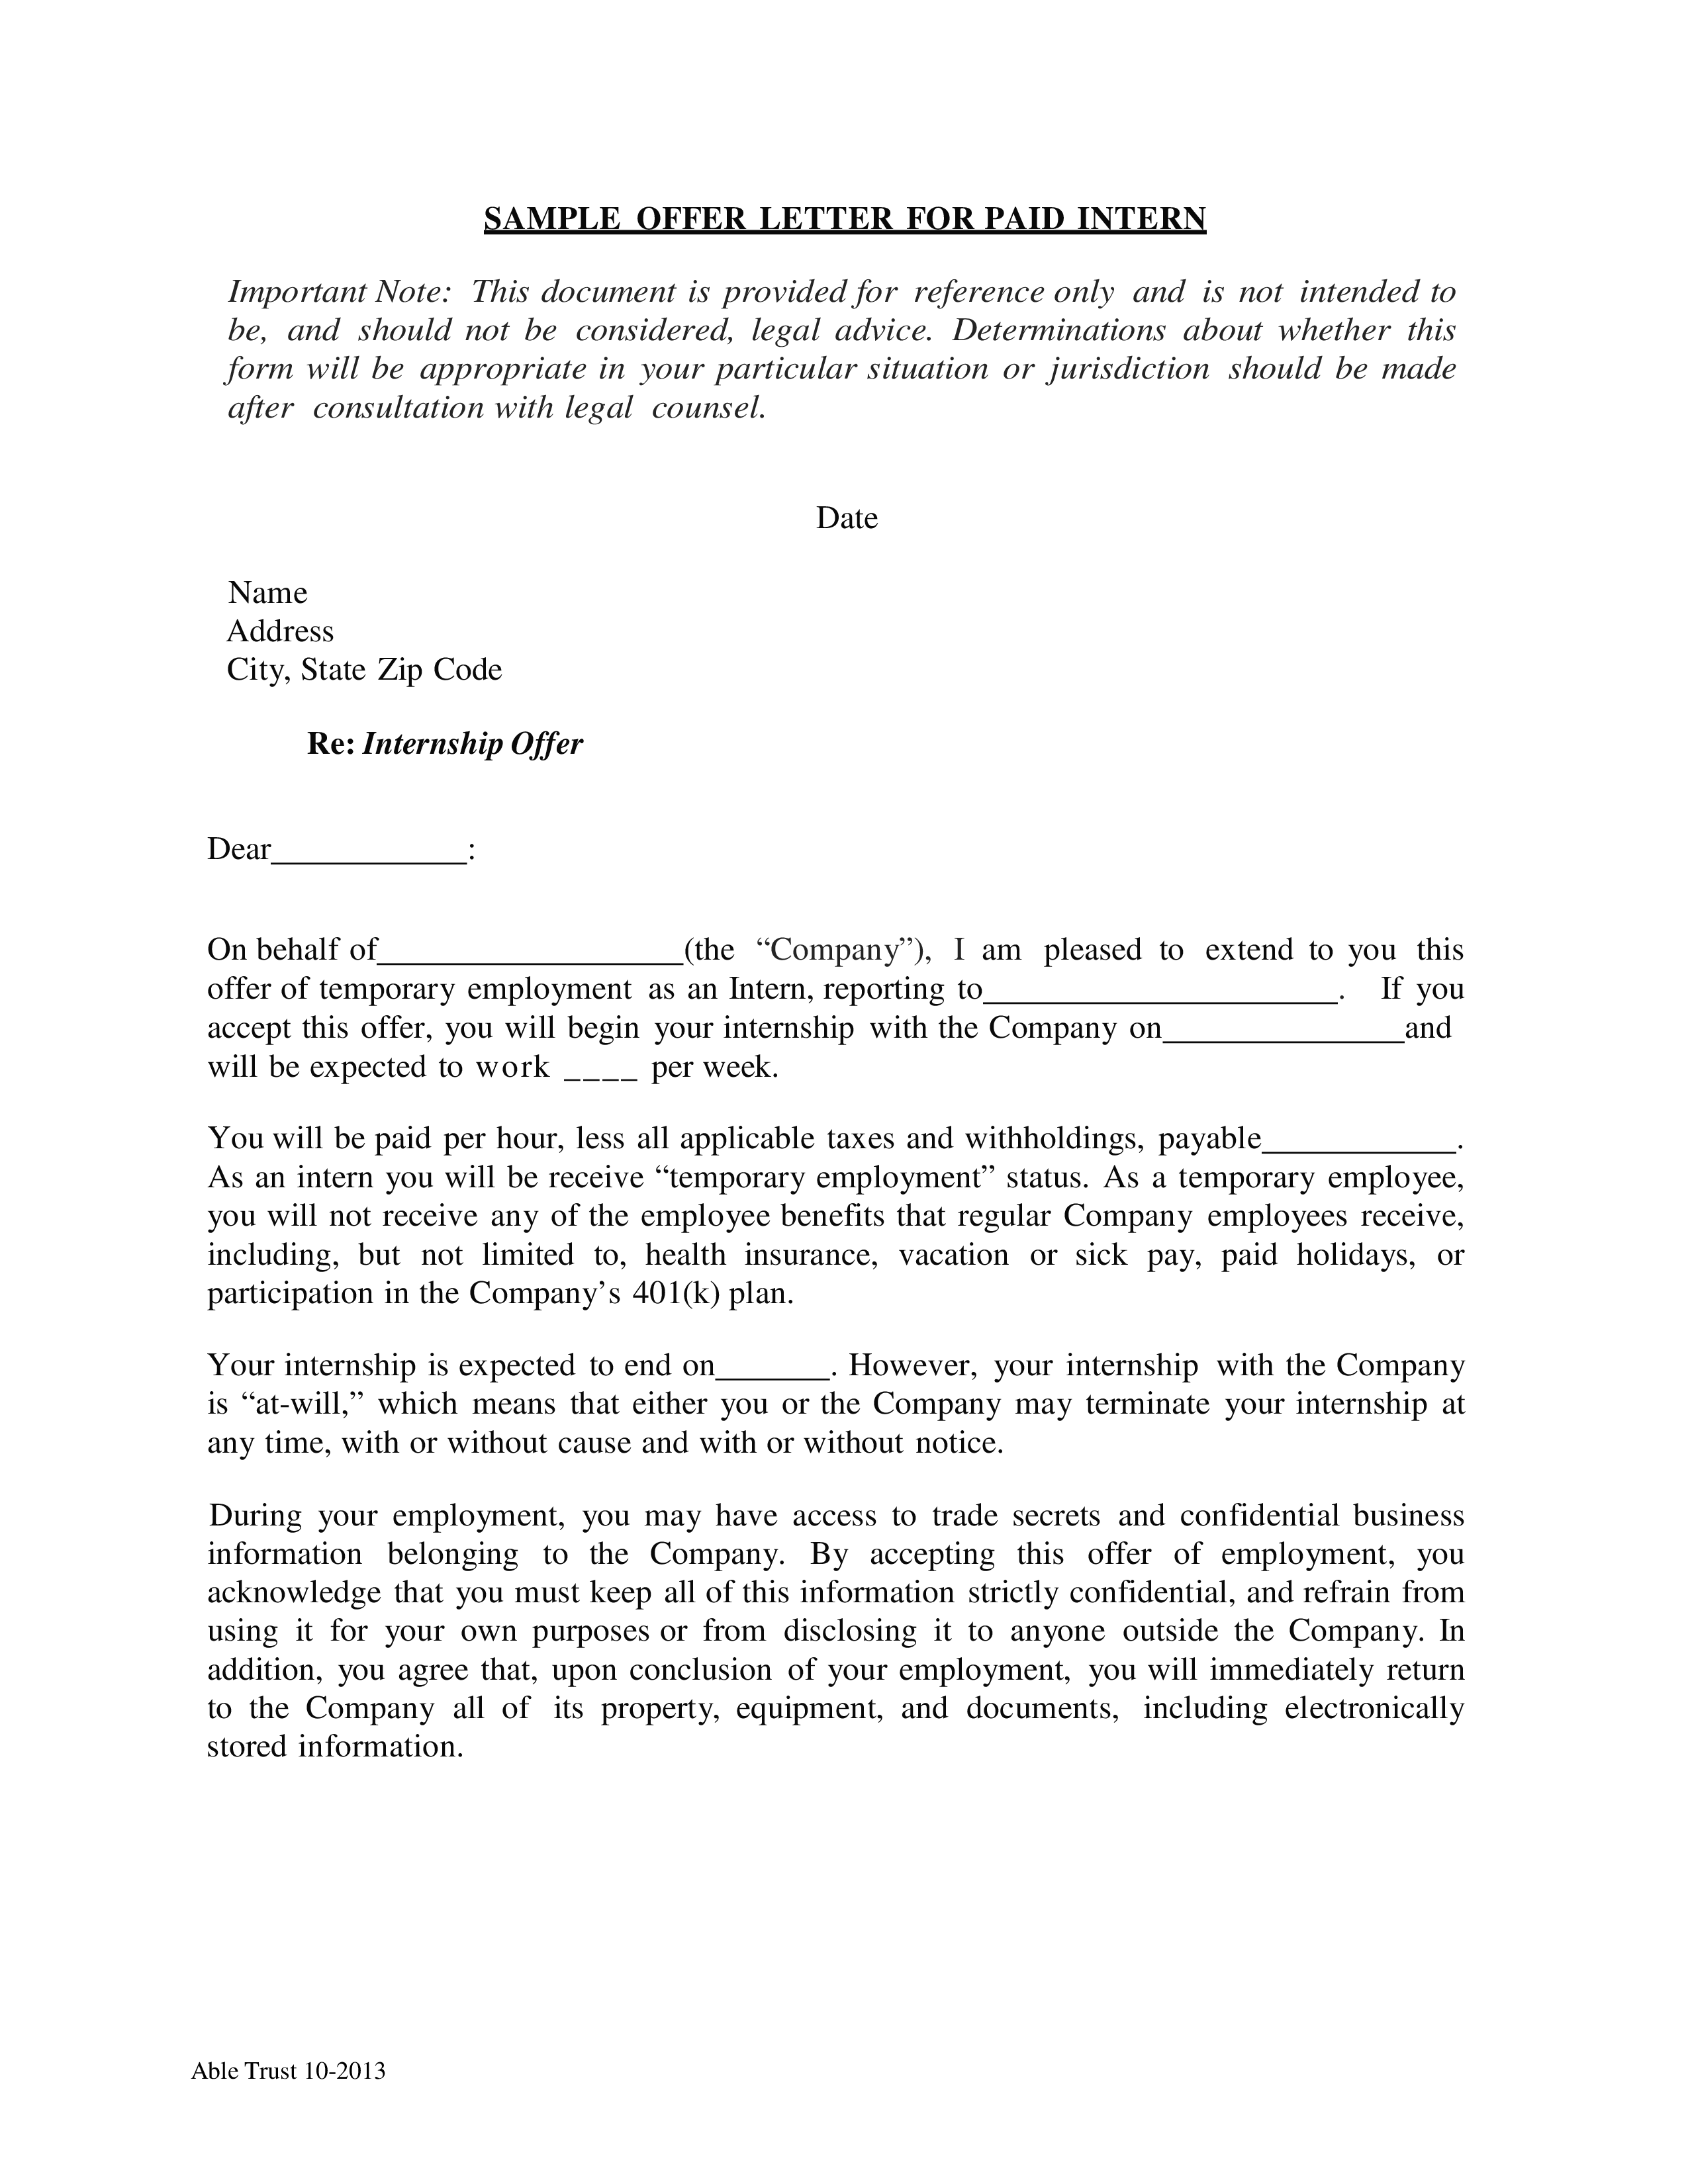 Paid Internship Offer Letter Sample Templates At Allbusinesstemplates Com